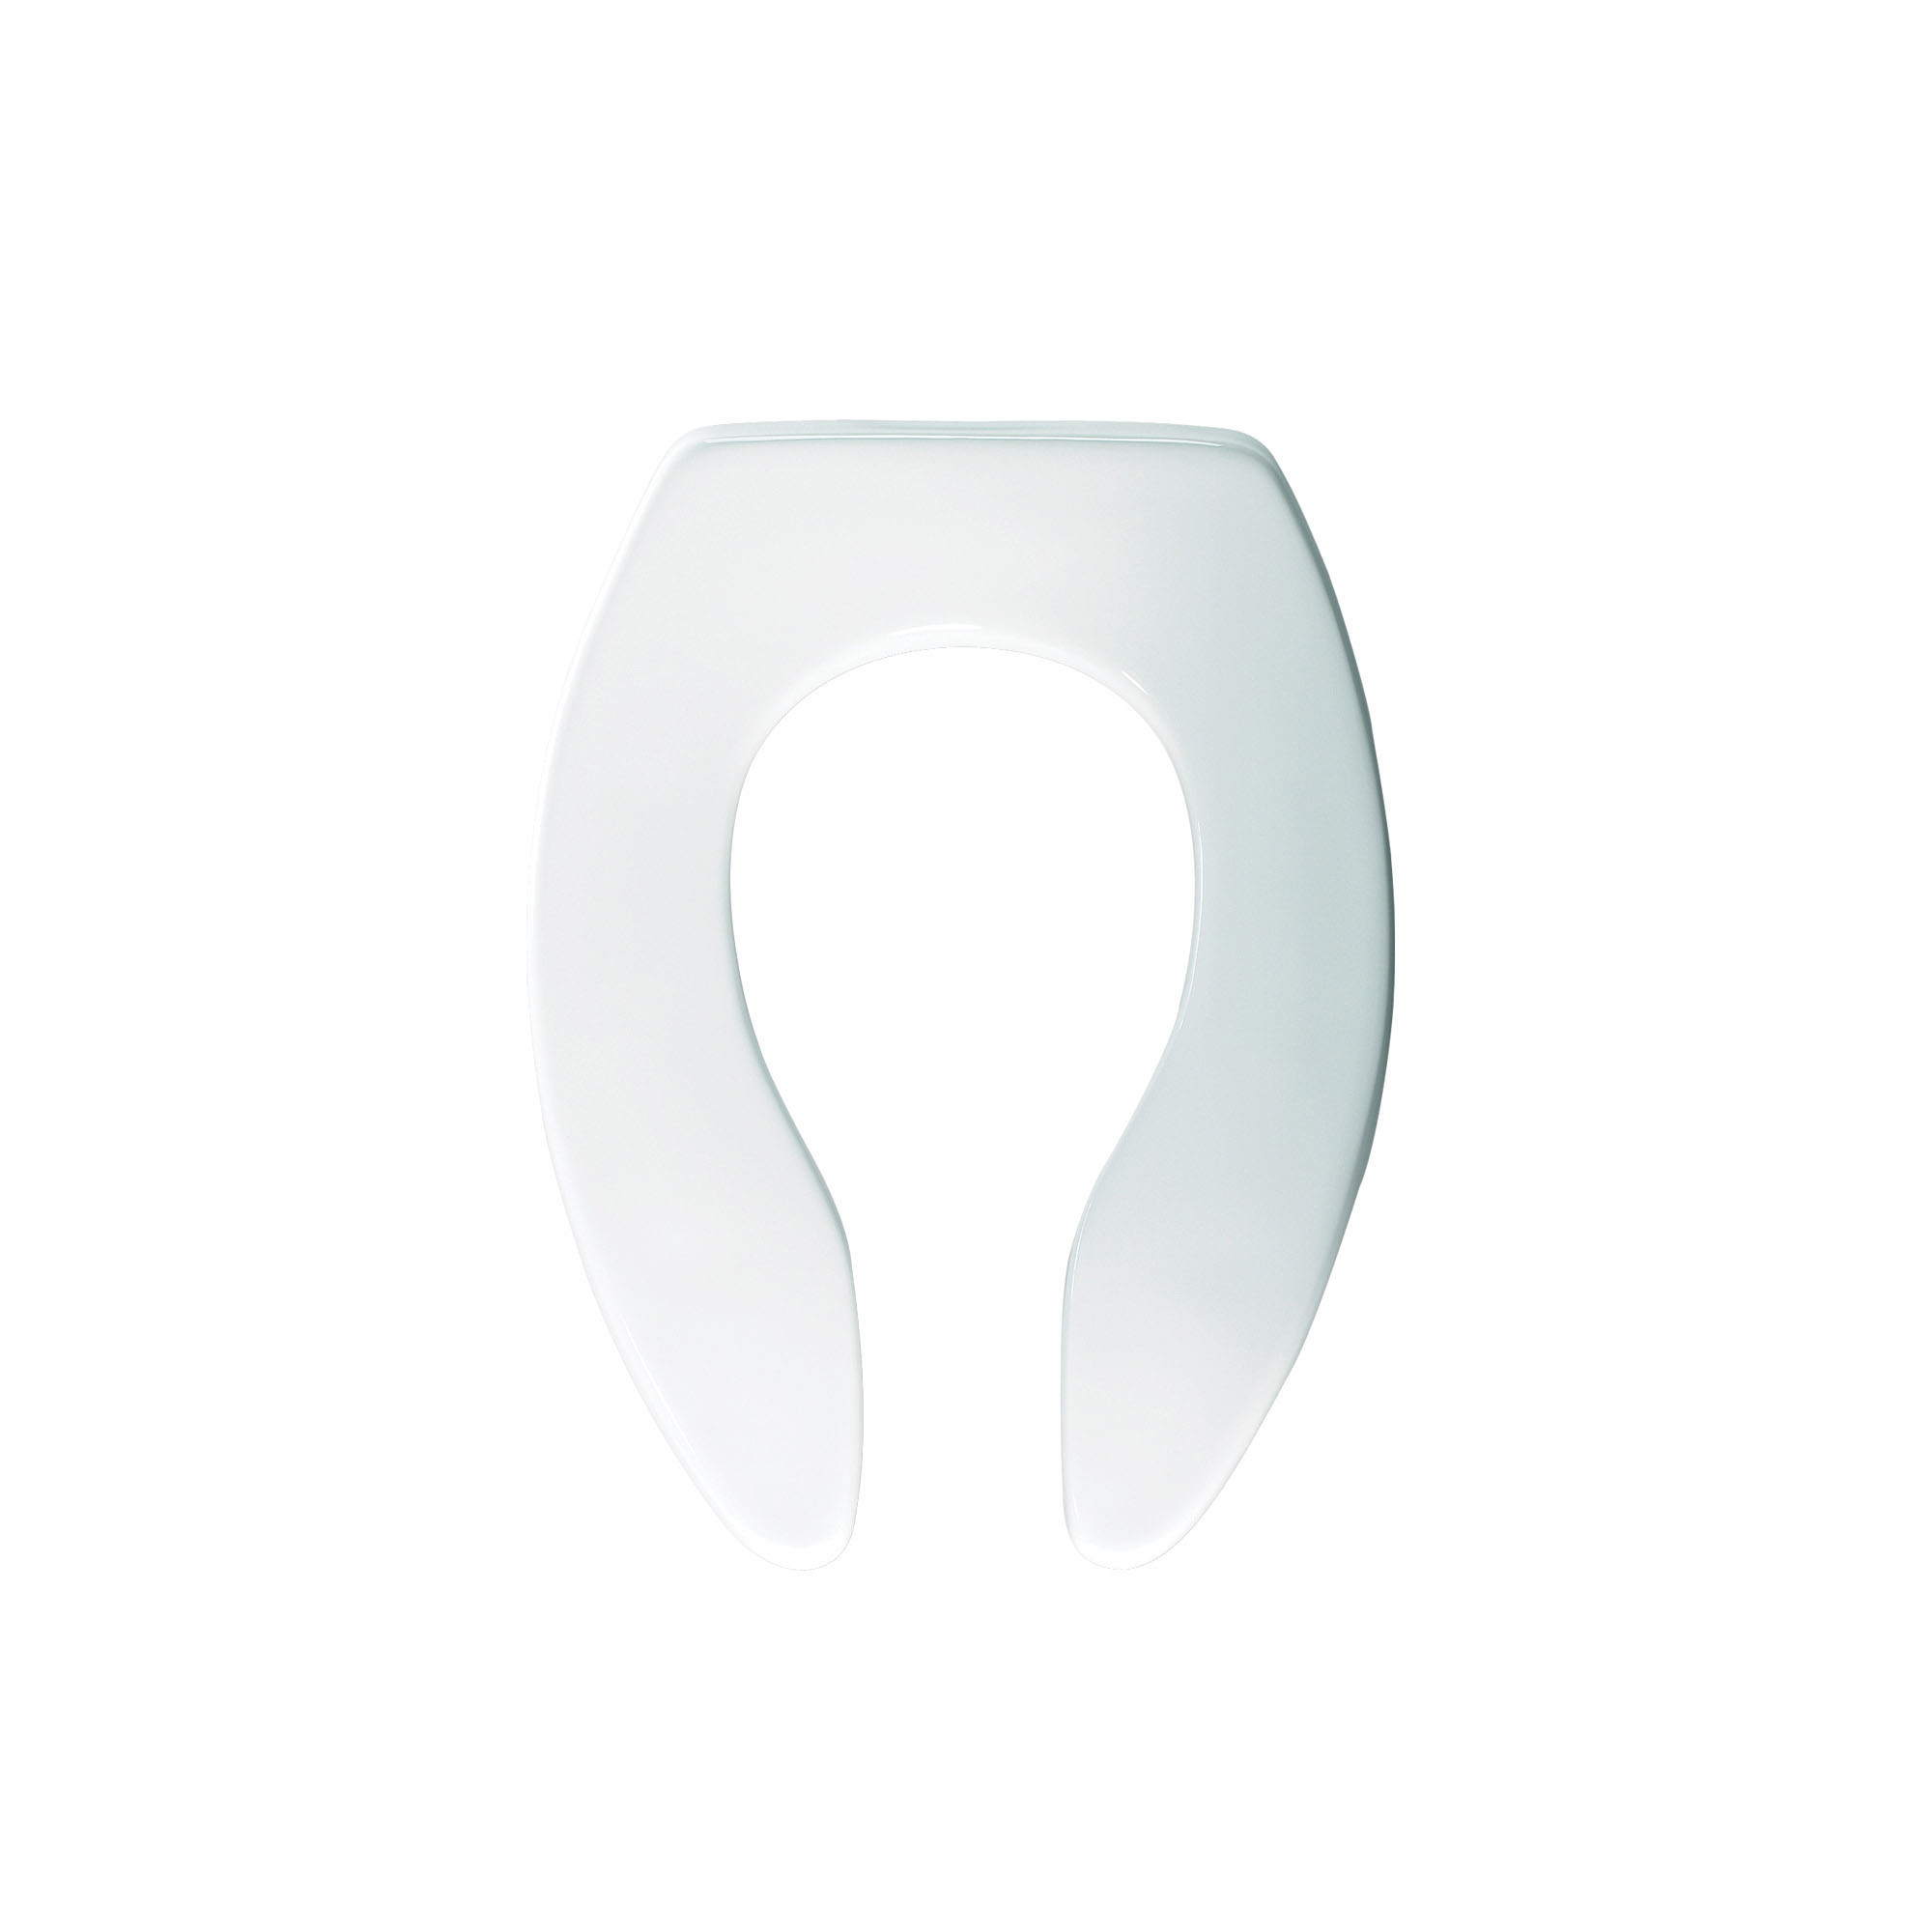 Olsonite® 95SSCT 000 Heavy Duty Toilet Seat, Elongated Bowl, Open Front, Plastic, White, Self-Sustaining Hinge, Domestic